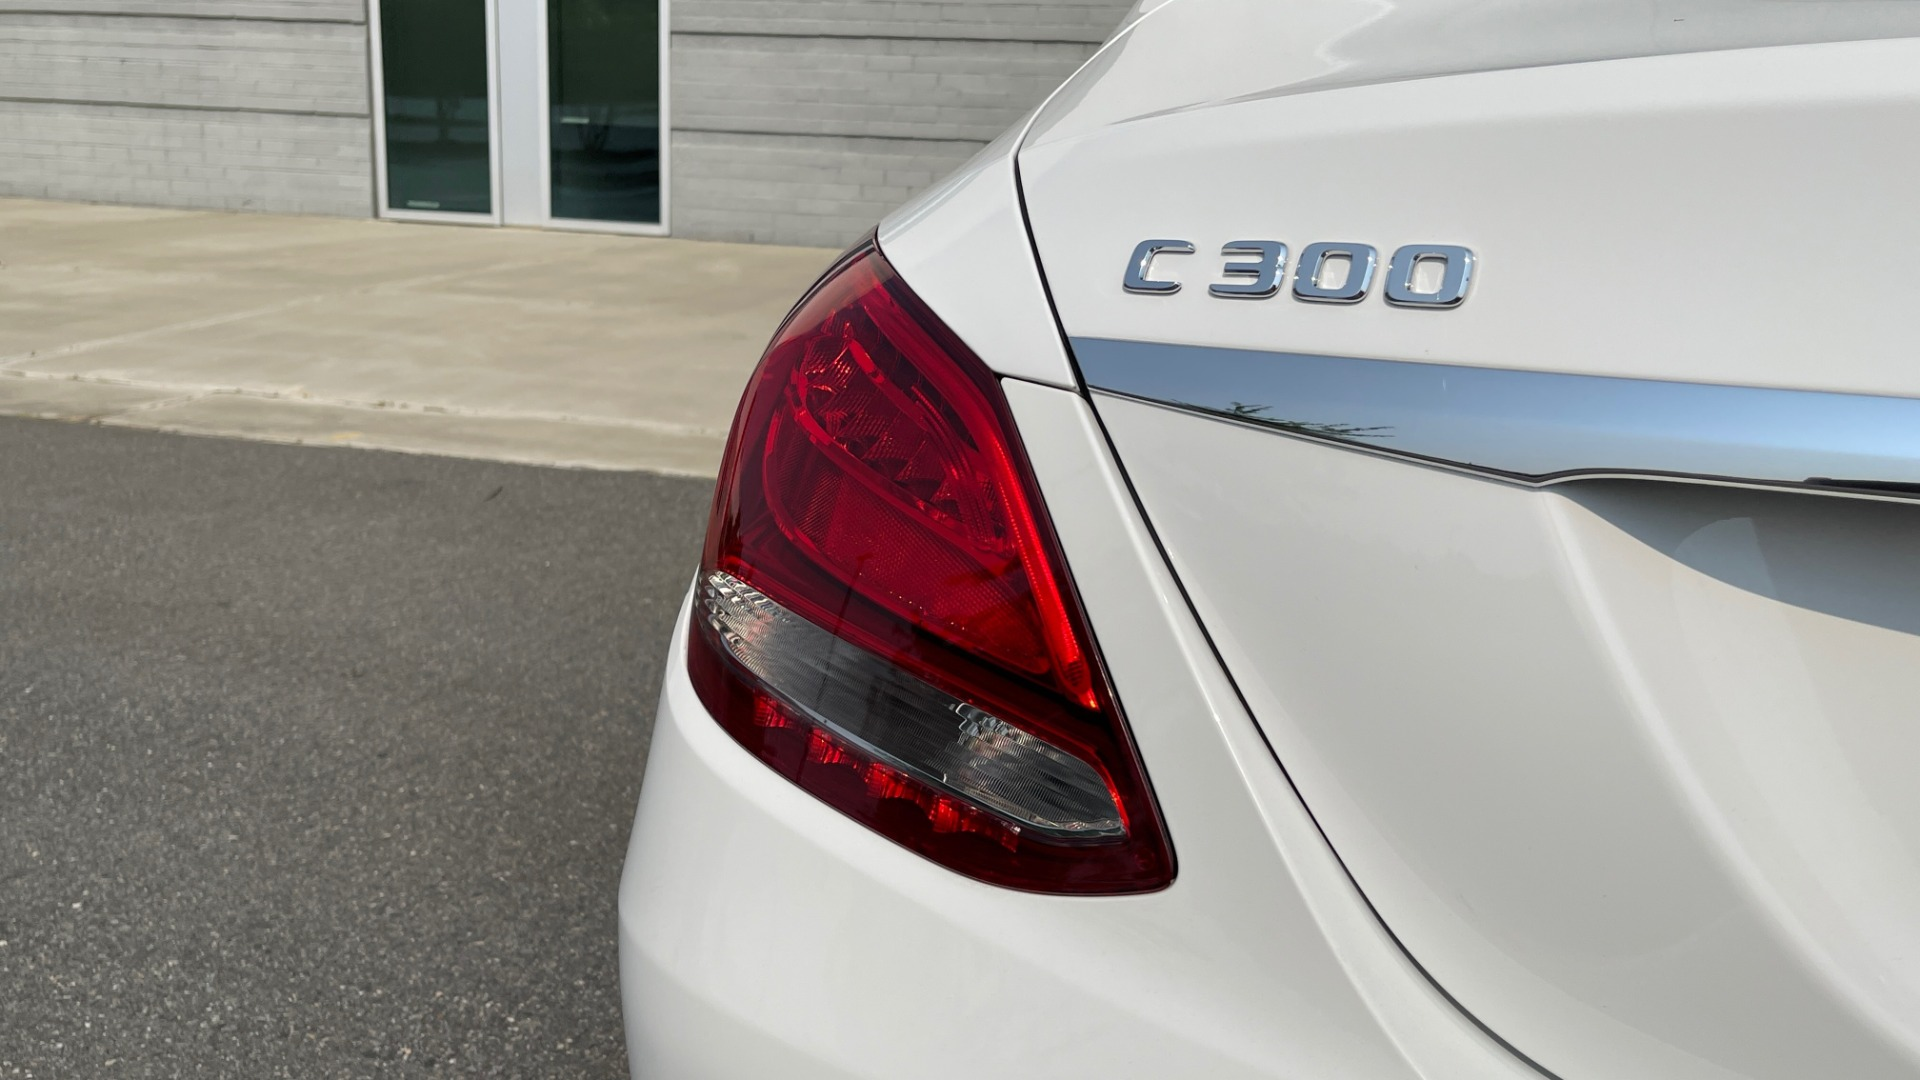 Used 2018 Mercedes-Benz C-Class C 300 4MATIC / PREMIUM / BURMESTER / HTD STS / SUNROOF / REARVIEW for sale $33,995 at Formula Imports in Charlotte NC 28227 22